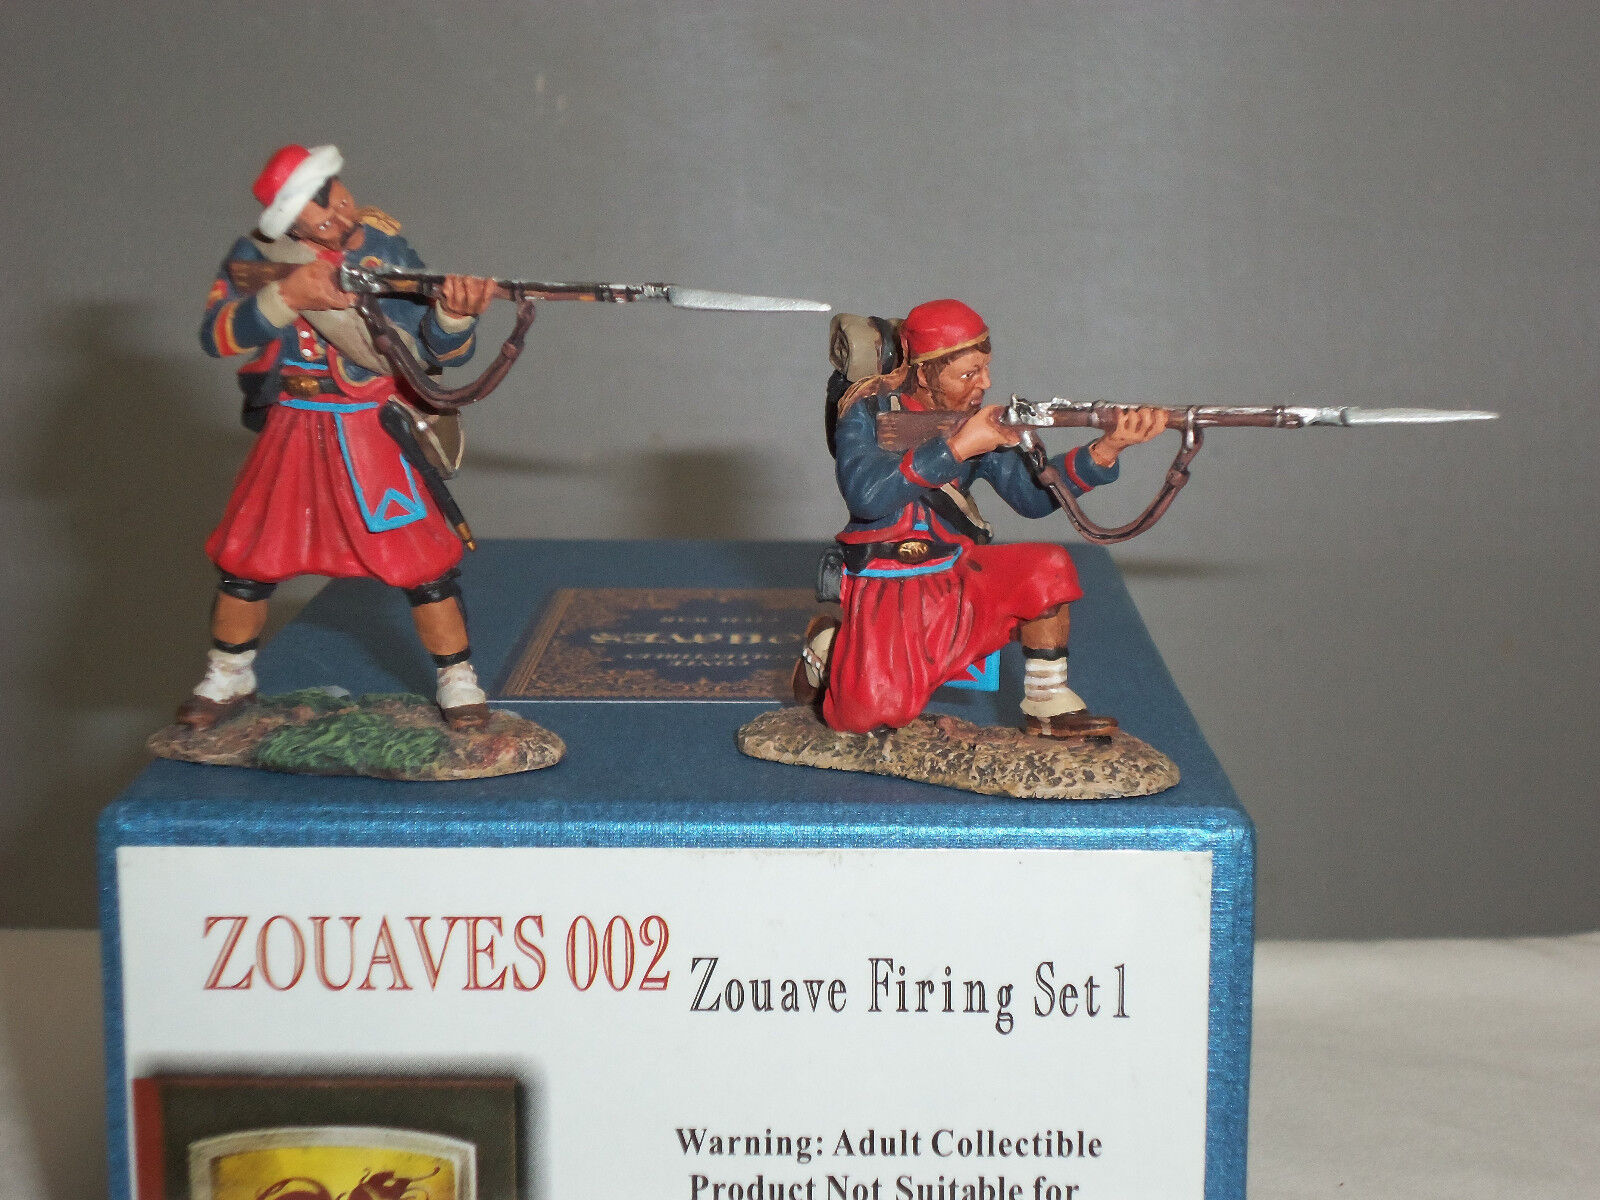 CONTE ZOUAVES002 ZOUAVE FIRING AMERICAN CIVIL WAR METAL TOY SOLDIER FIGURE SET 1